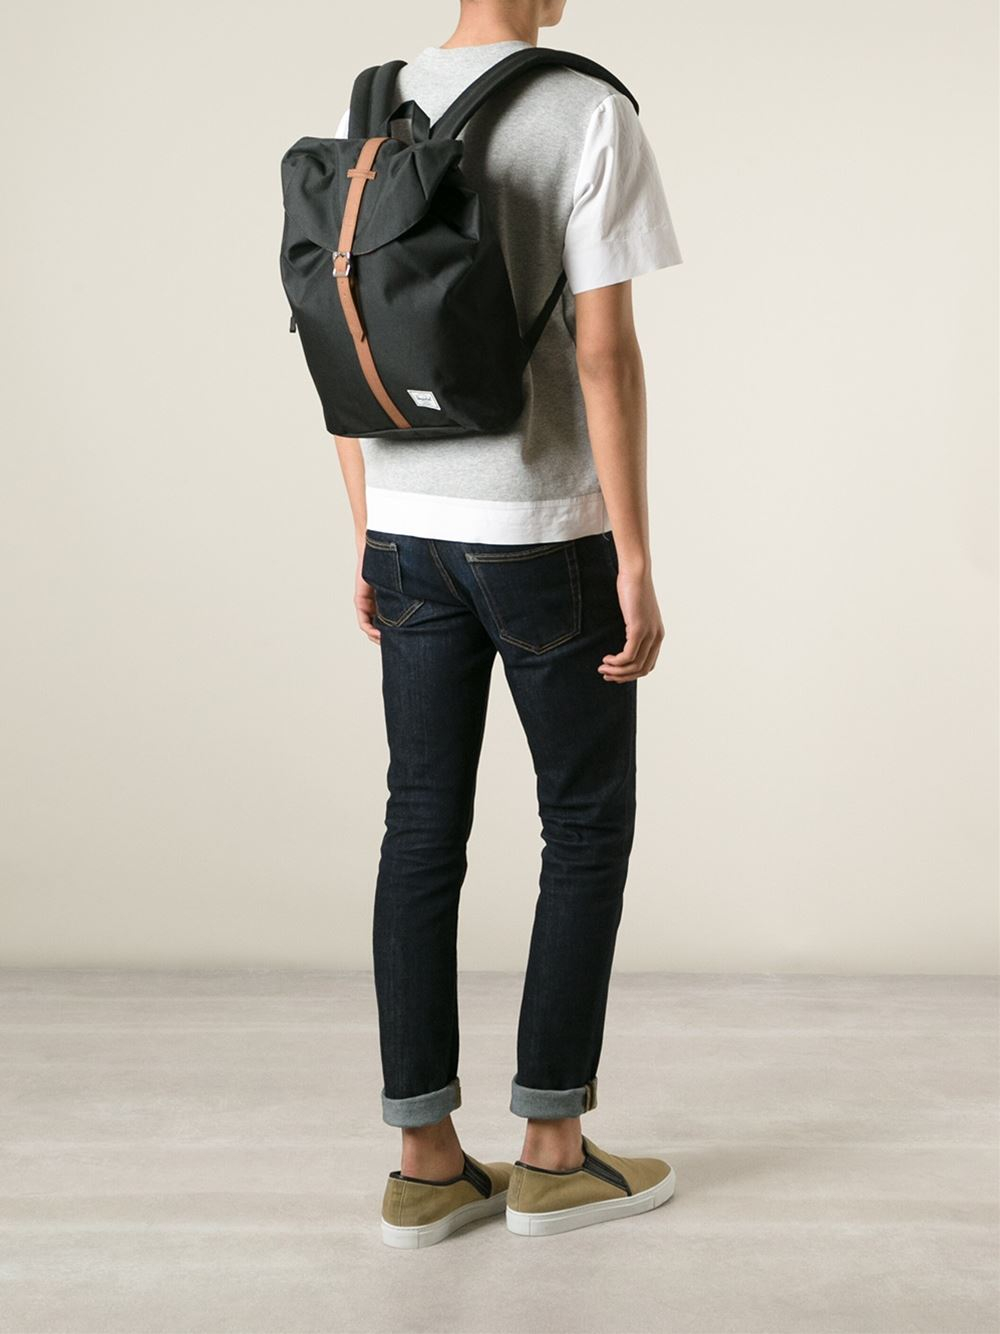 4f6daa27da9b Lyst - Herschel Supply Co.  Post  Backpack in Black for Men